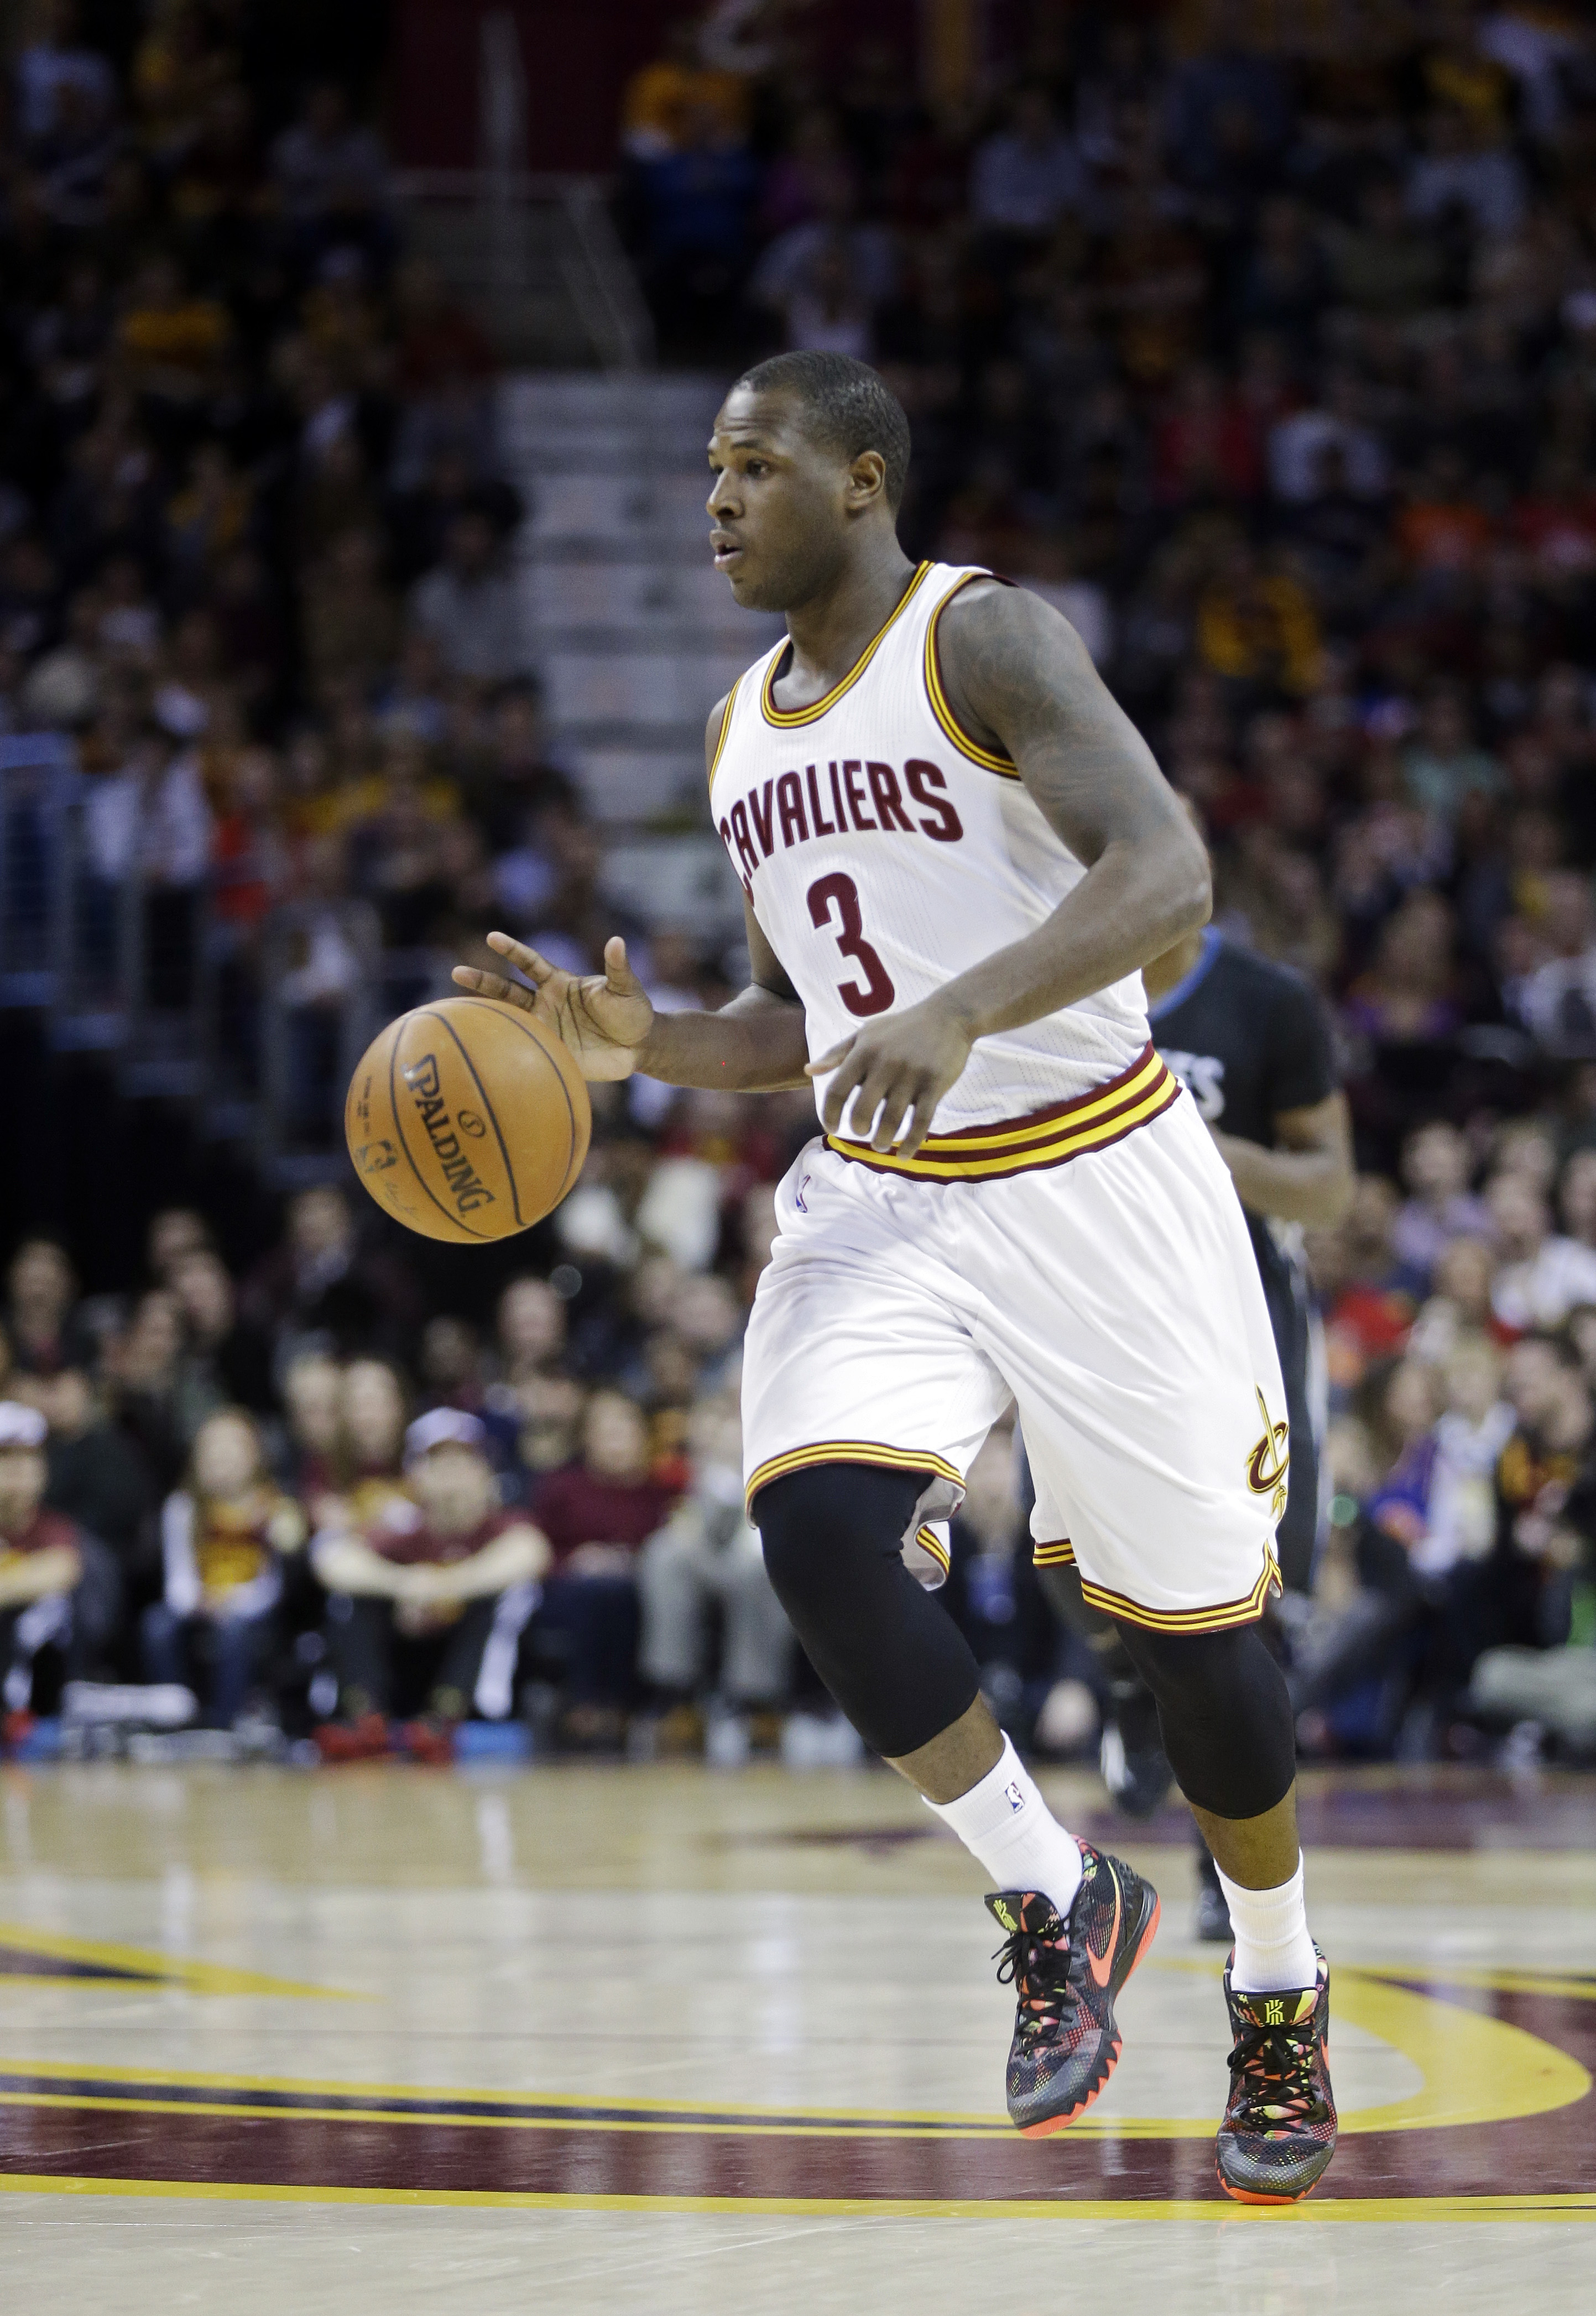 Cleveland Cavaliers' Dion Waiters (3) brings the ball up against the Minnesota Timberwolves in an NBA basketball game Tuesday, Dec. 23, 2014, in Cleveland.